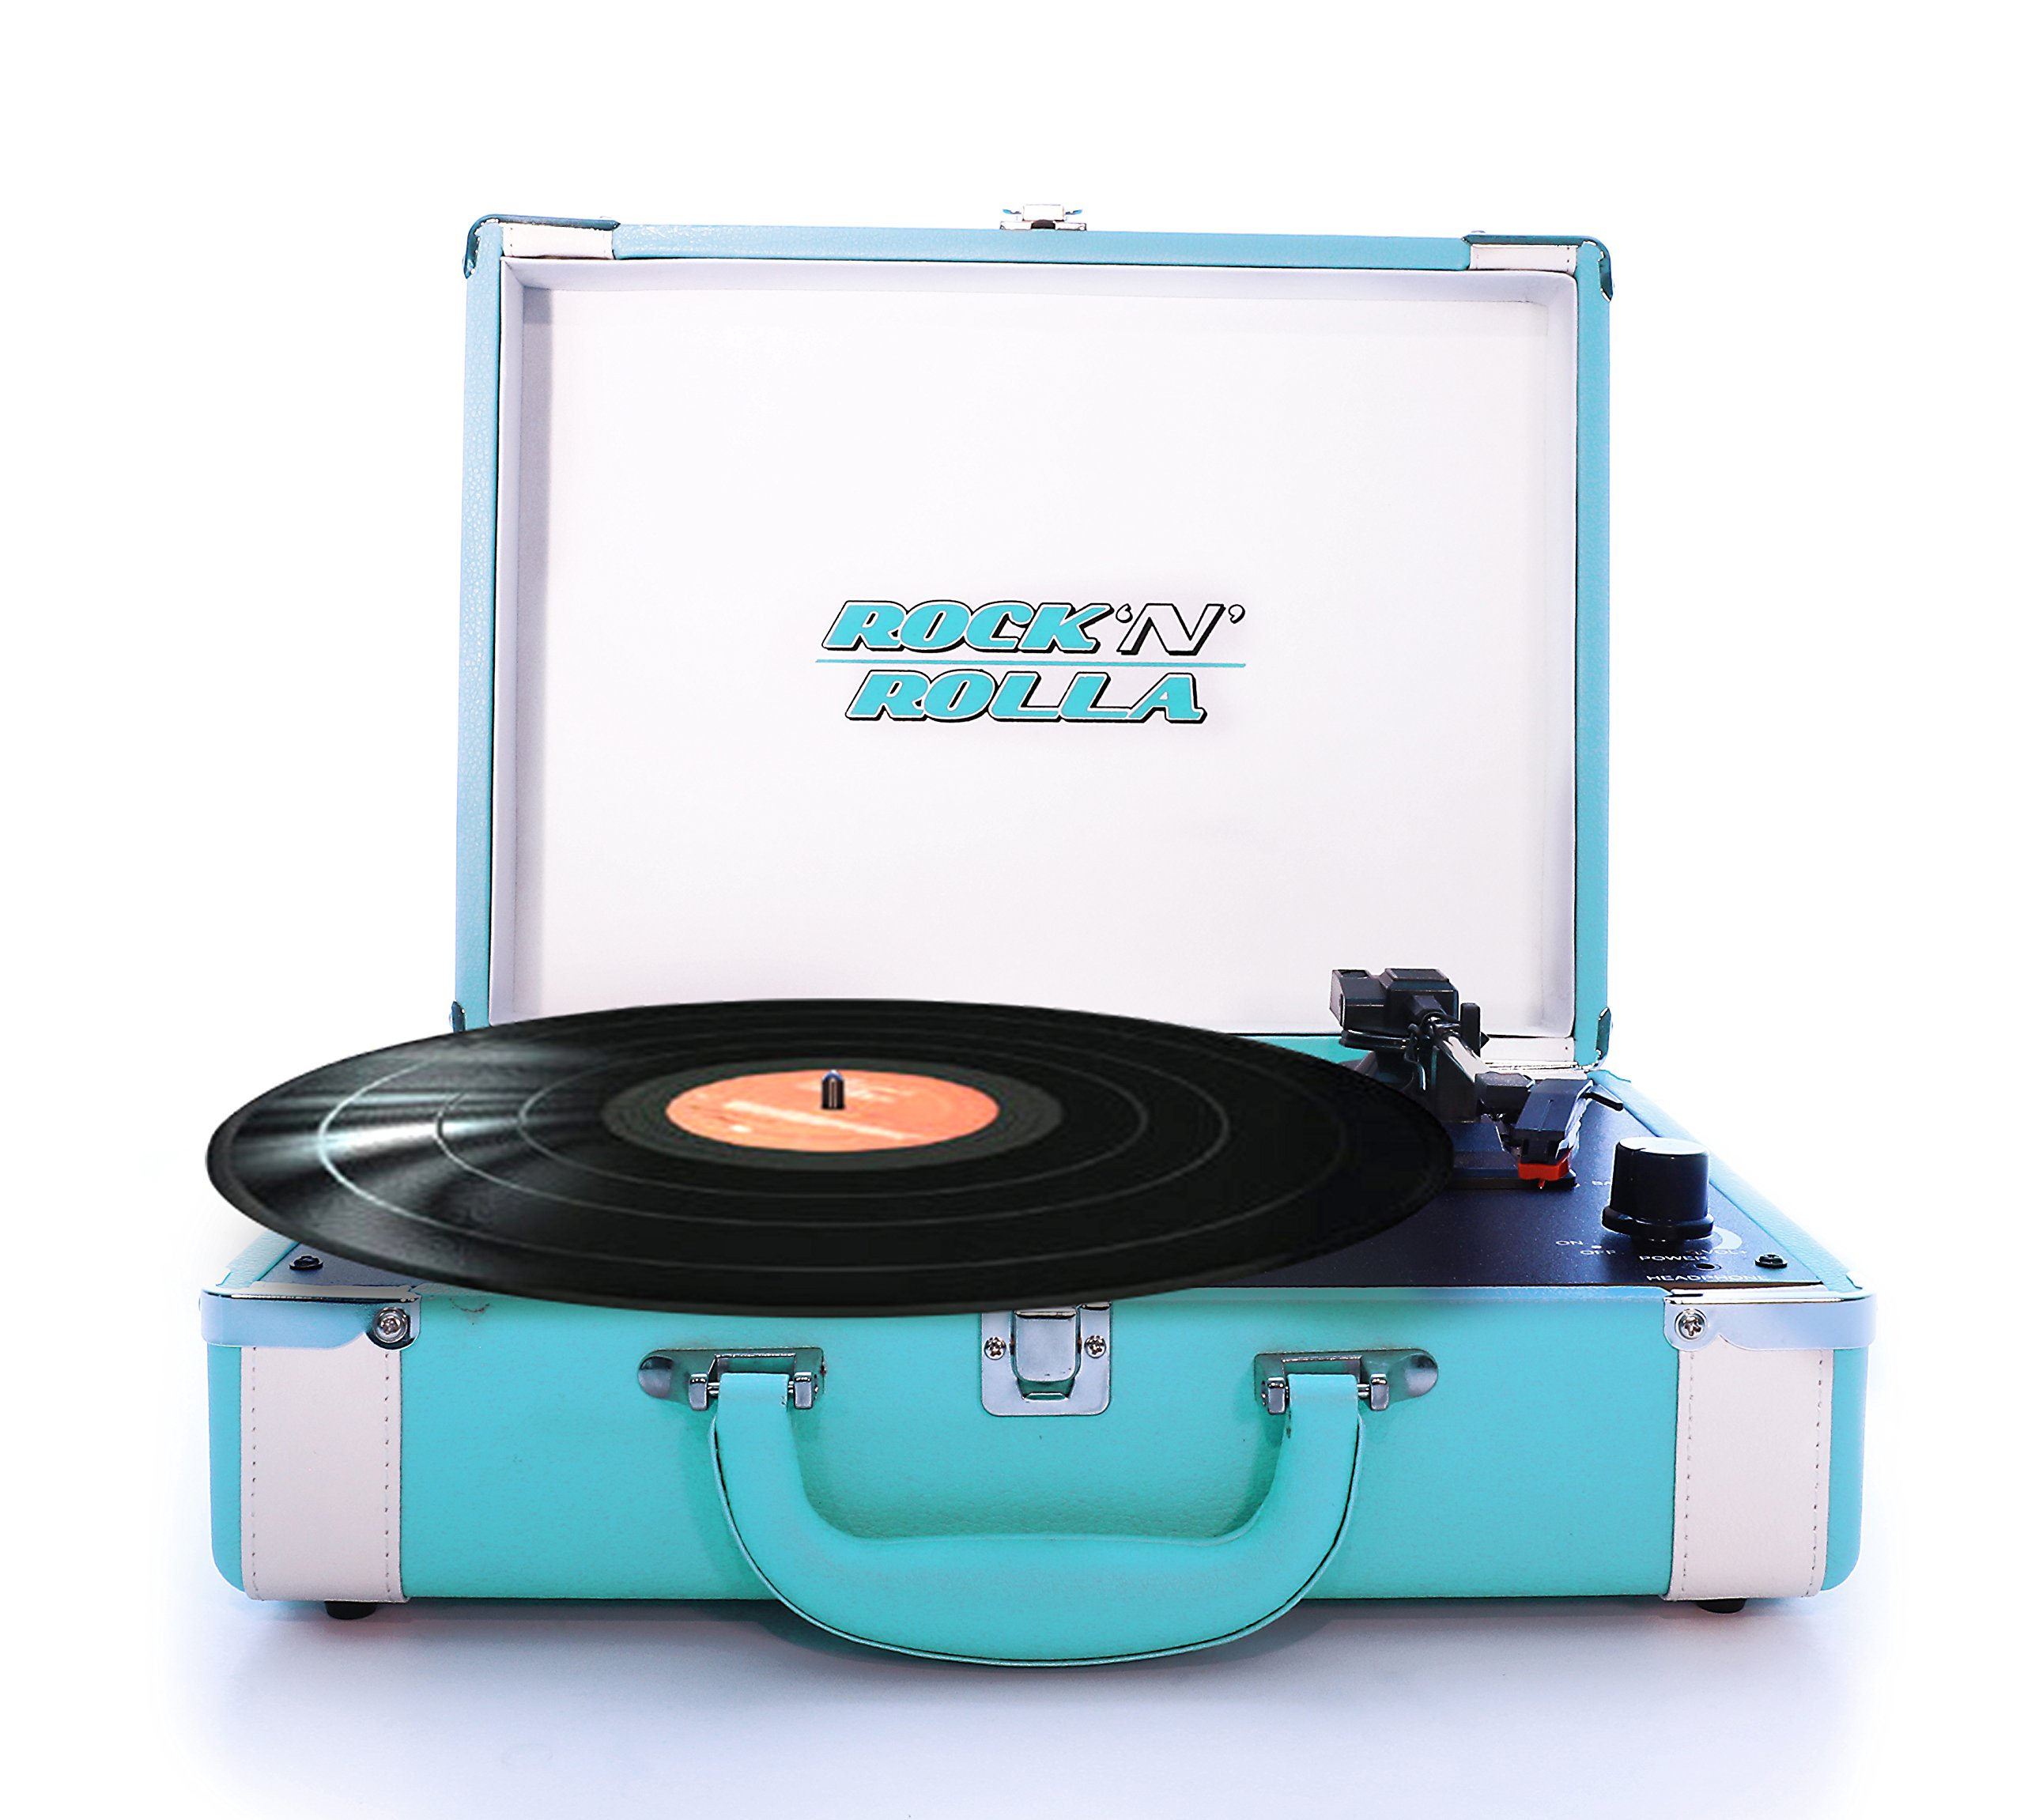 Rock 'N' Rolla Premium - Portable Bluetooth USB Vinyl Record Player Turntable - Teal / White